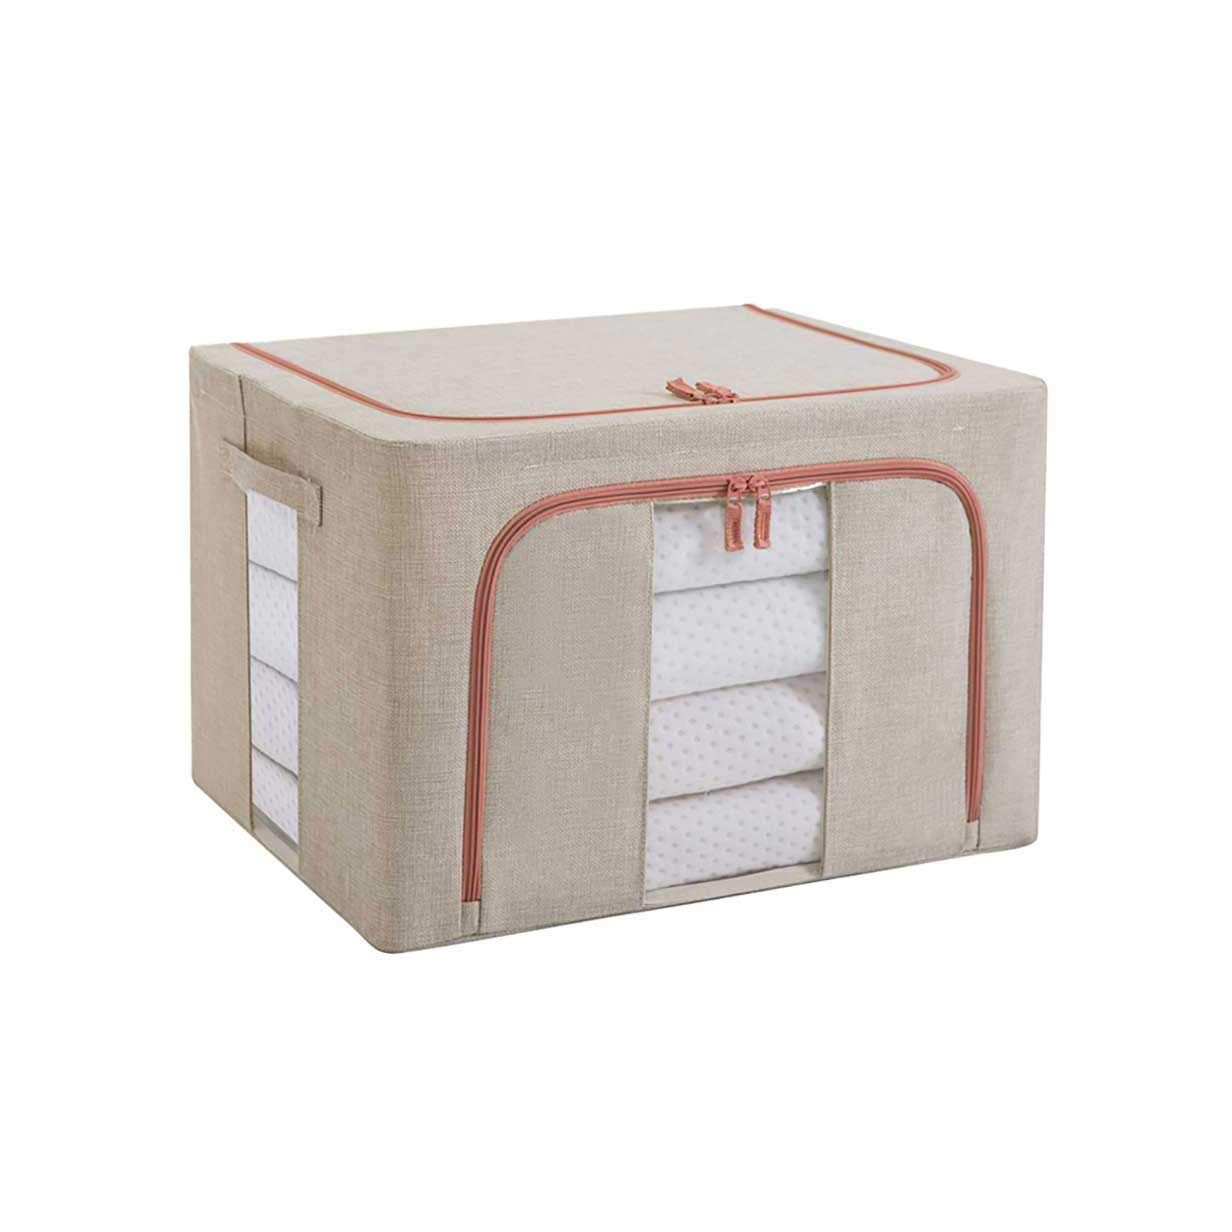 storage box Rectangular Cube, Cotton and Linen Art Storage Bin/Container with Zipper and Handle, Large Capacity Foldable Storage Basket with Steel Frames (Size : 66L)